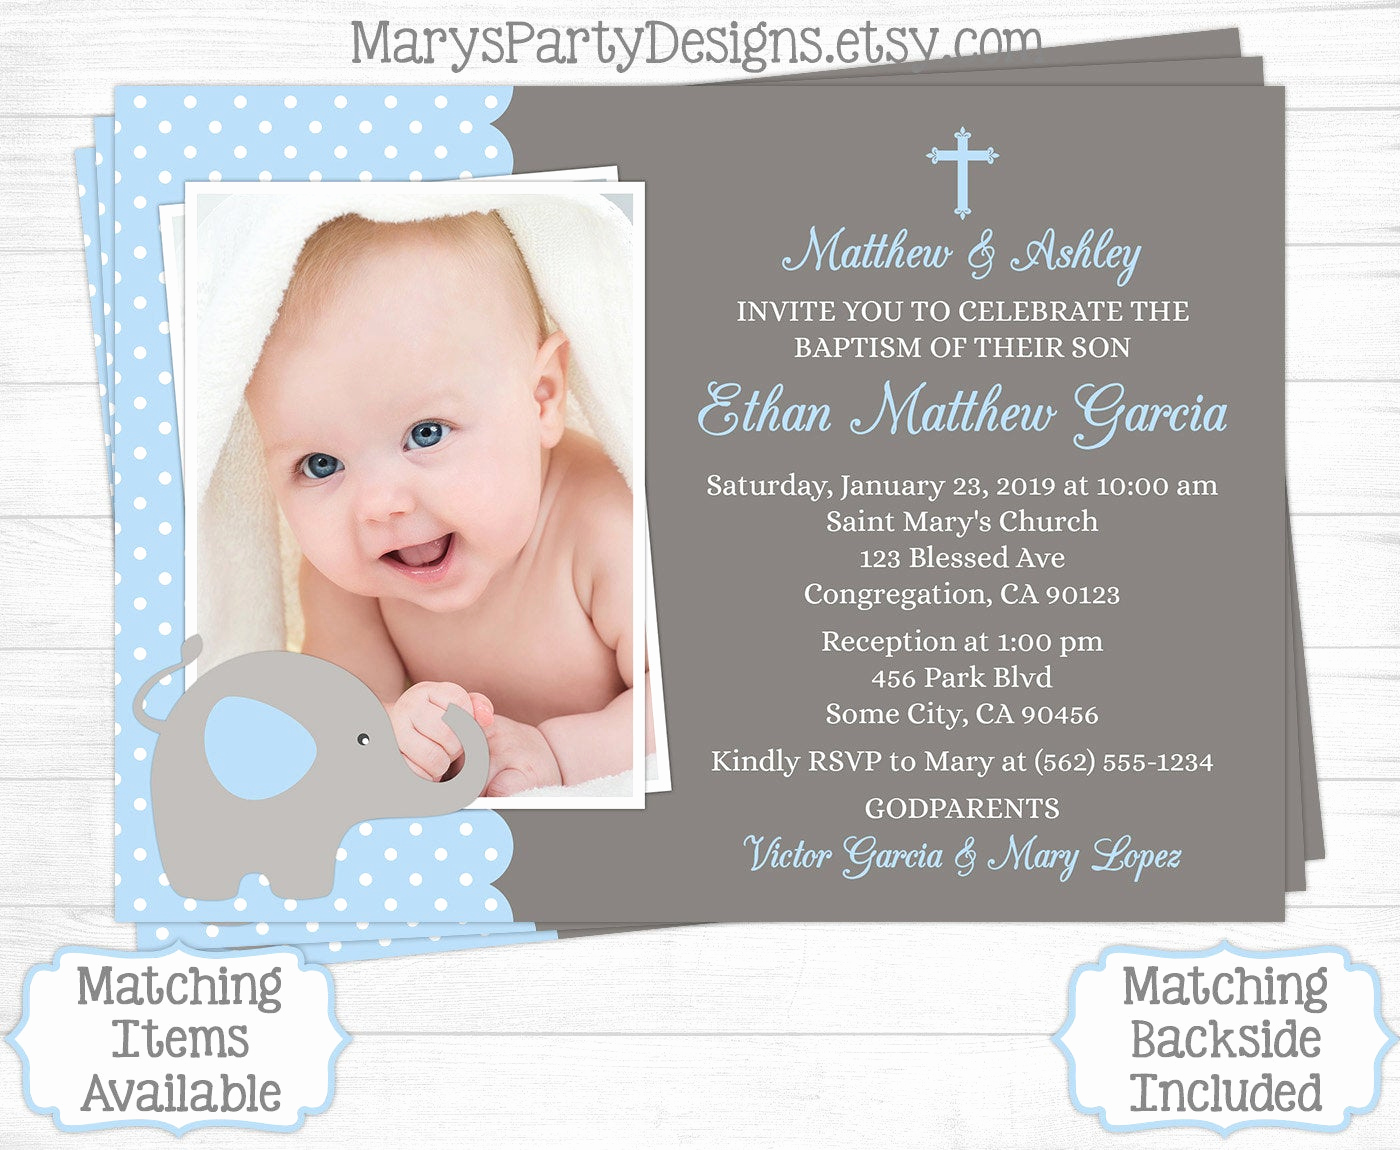 Christening Invitation for Baby Boy Lovely Elephant Baptism Invitation Christening Baptismal Boy First